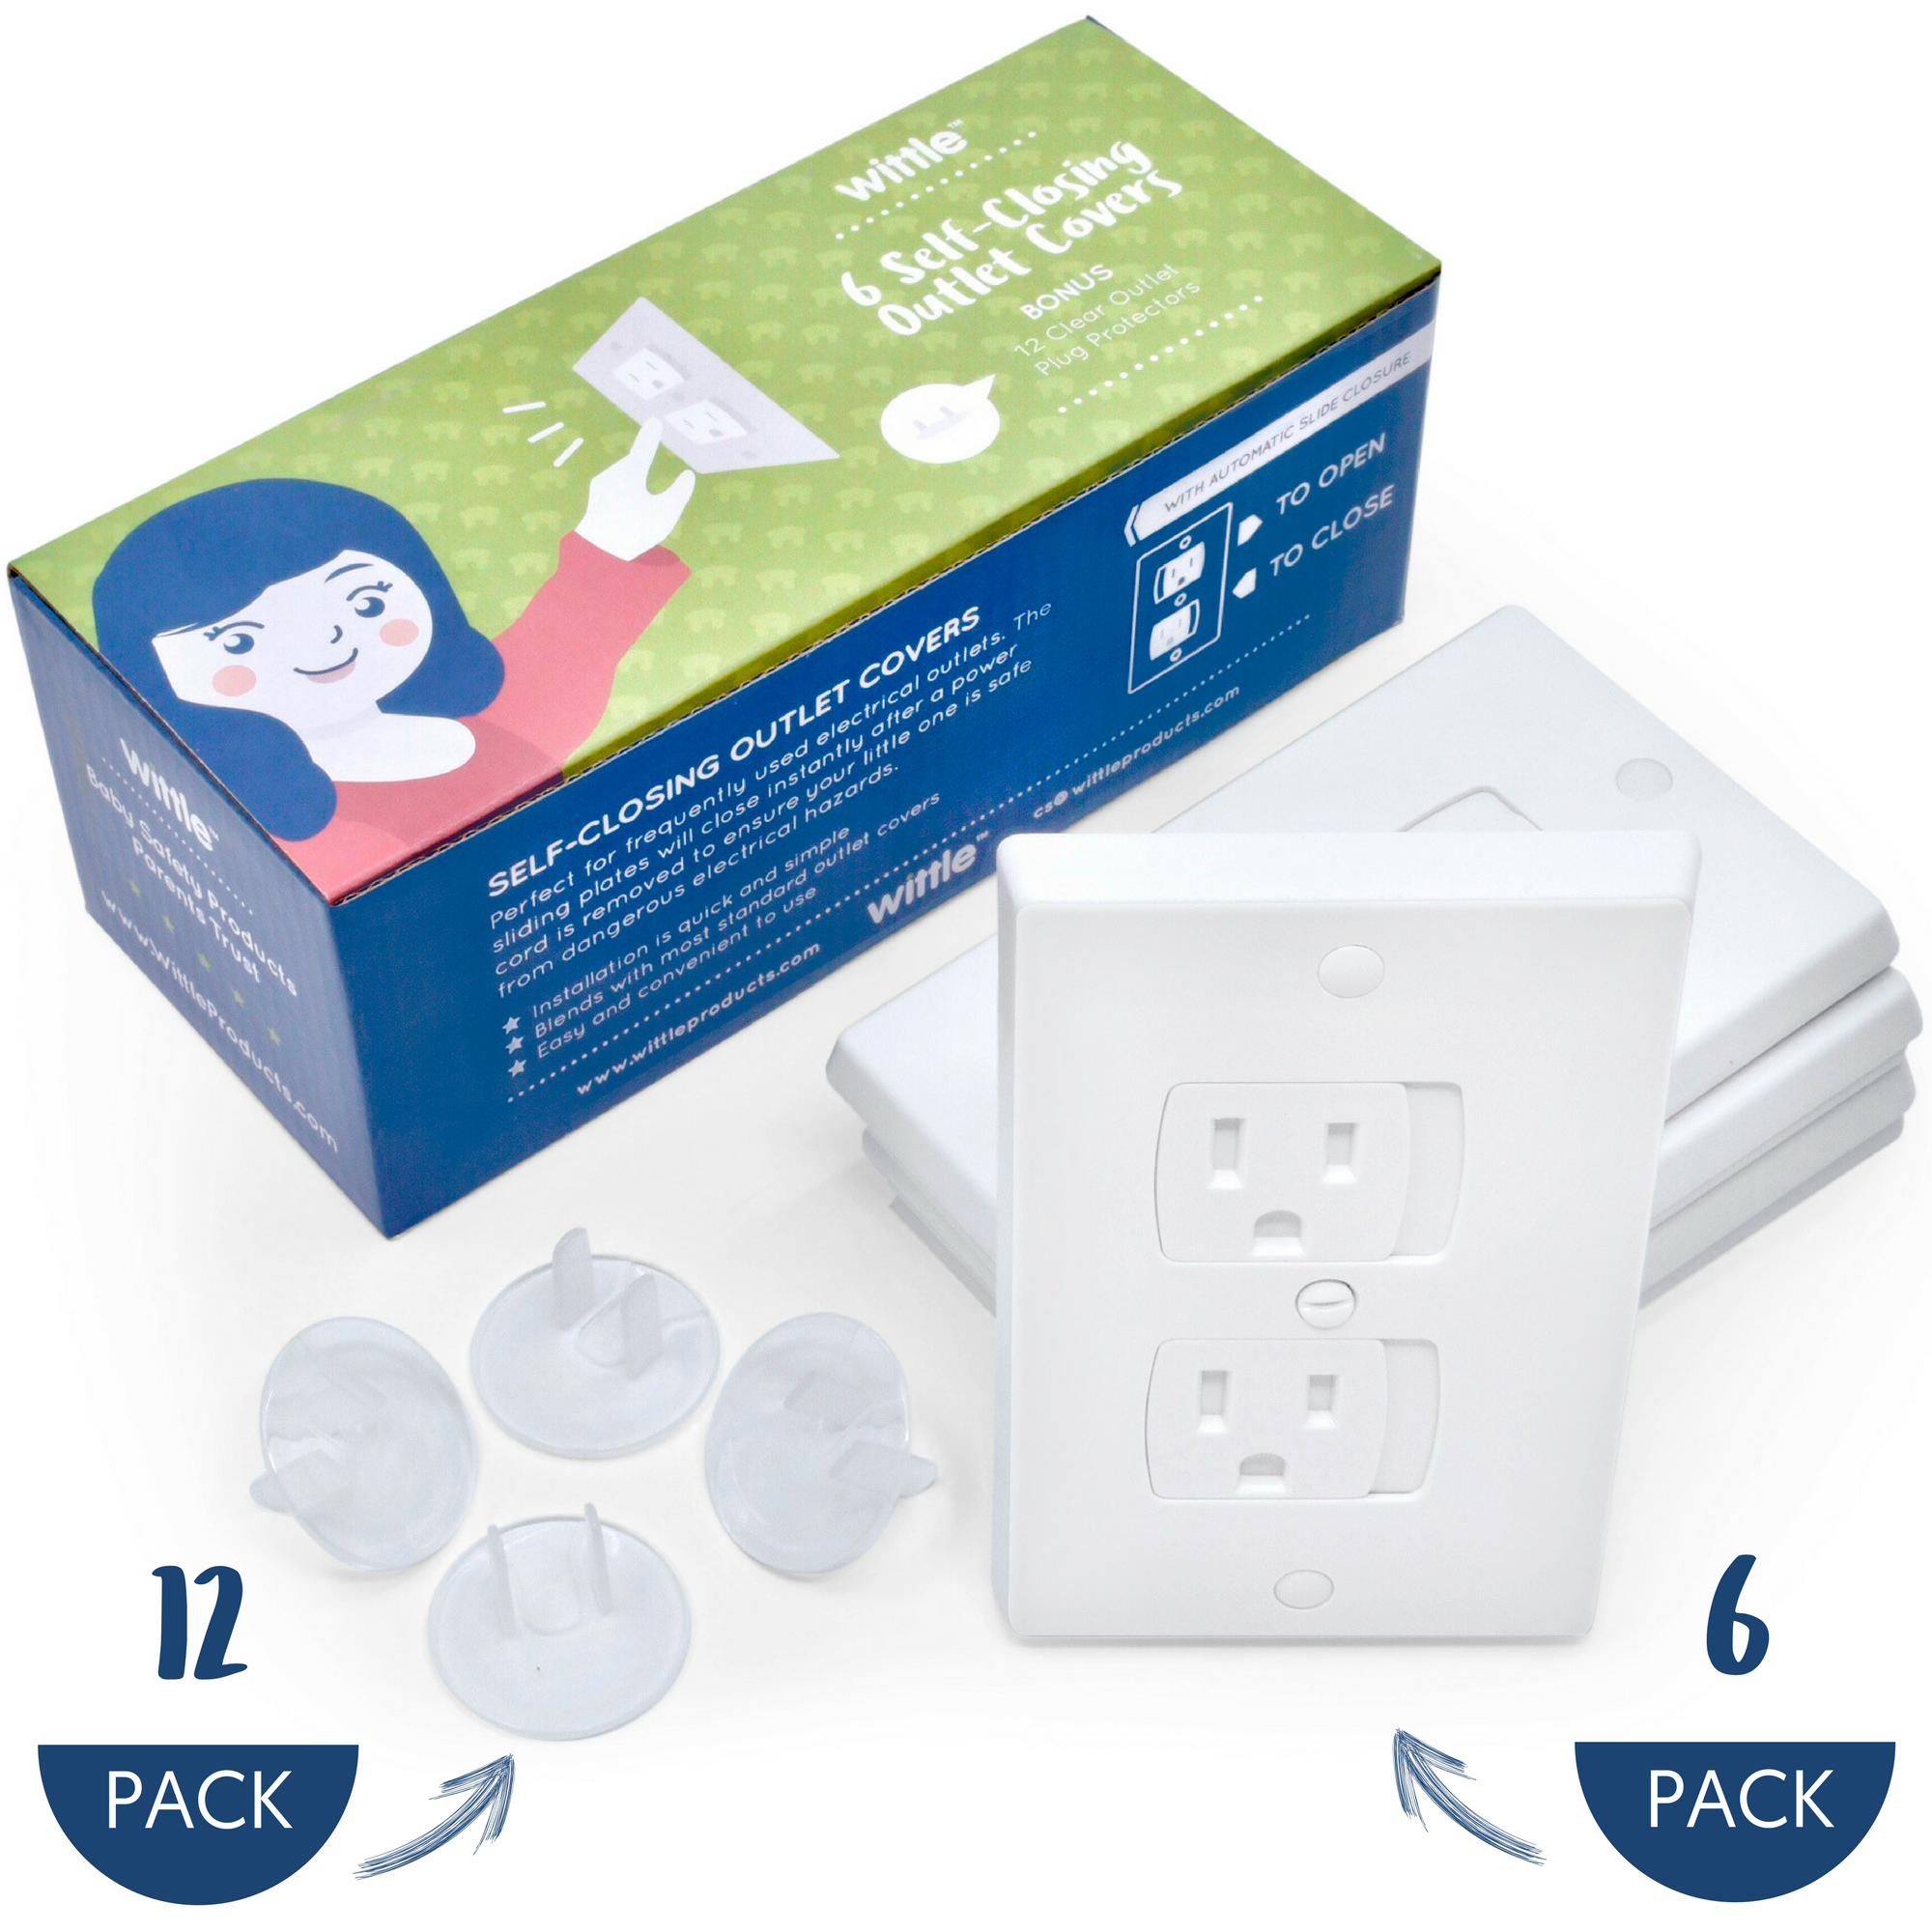 Wittle Self Closing Outlet Covers (6 White) Plus Plug Cover Outlet Protectors (12 Clear)